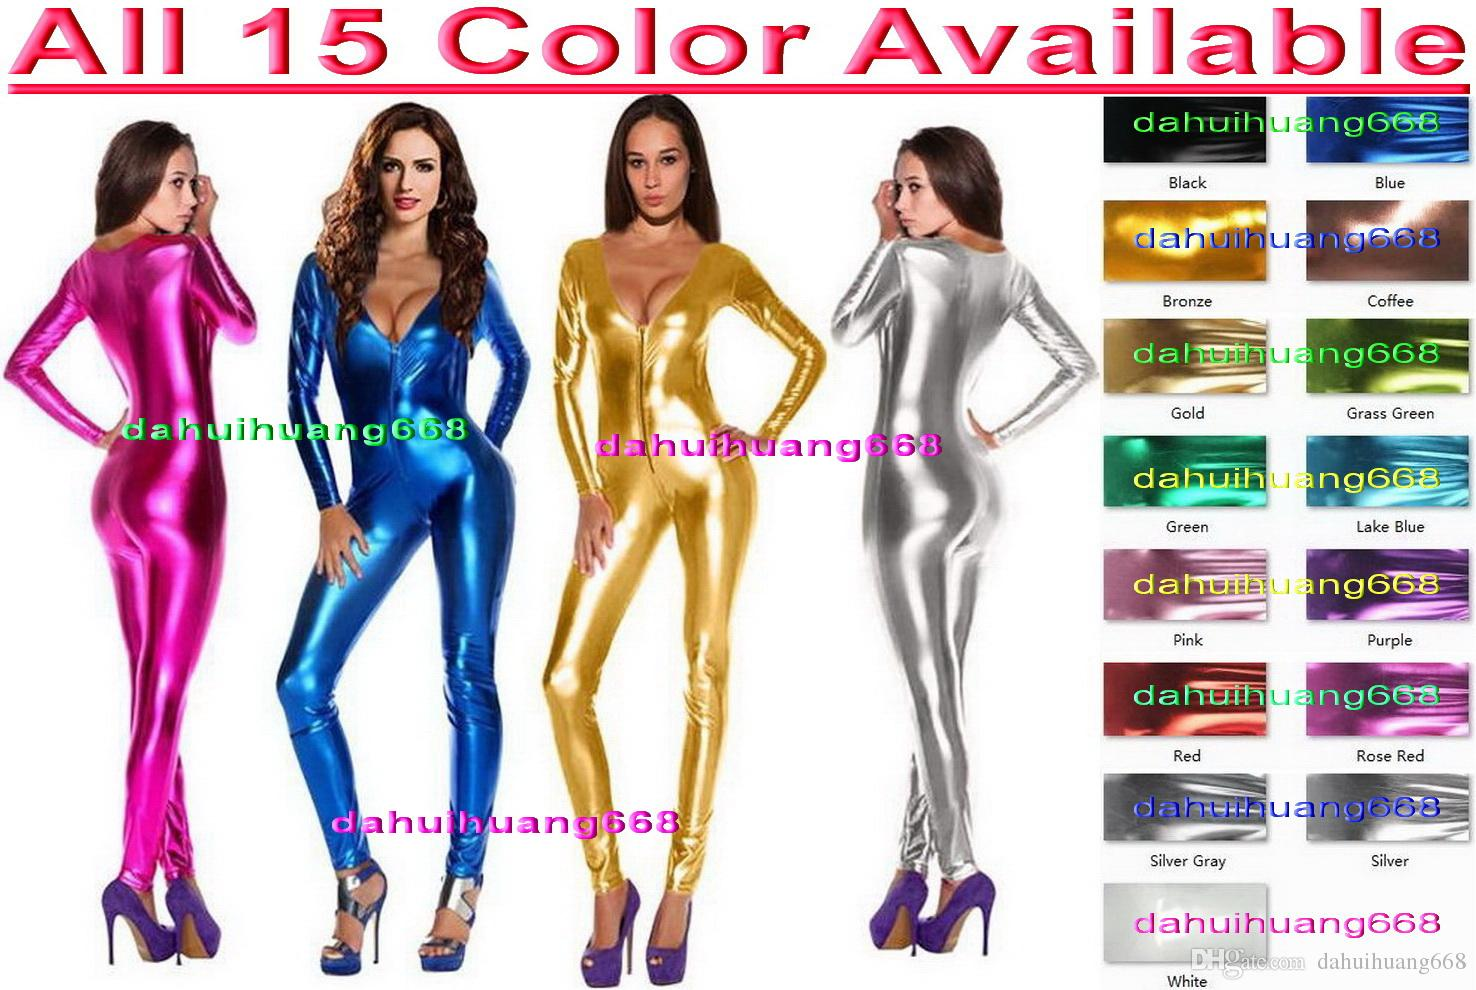 Sexy 15 Color Shiny Lycra Metallic Suit Catsuit Costumes Sexy Women V-Collar Body Suit Costumes Halloween Party Cosplay Costumes DH009